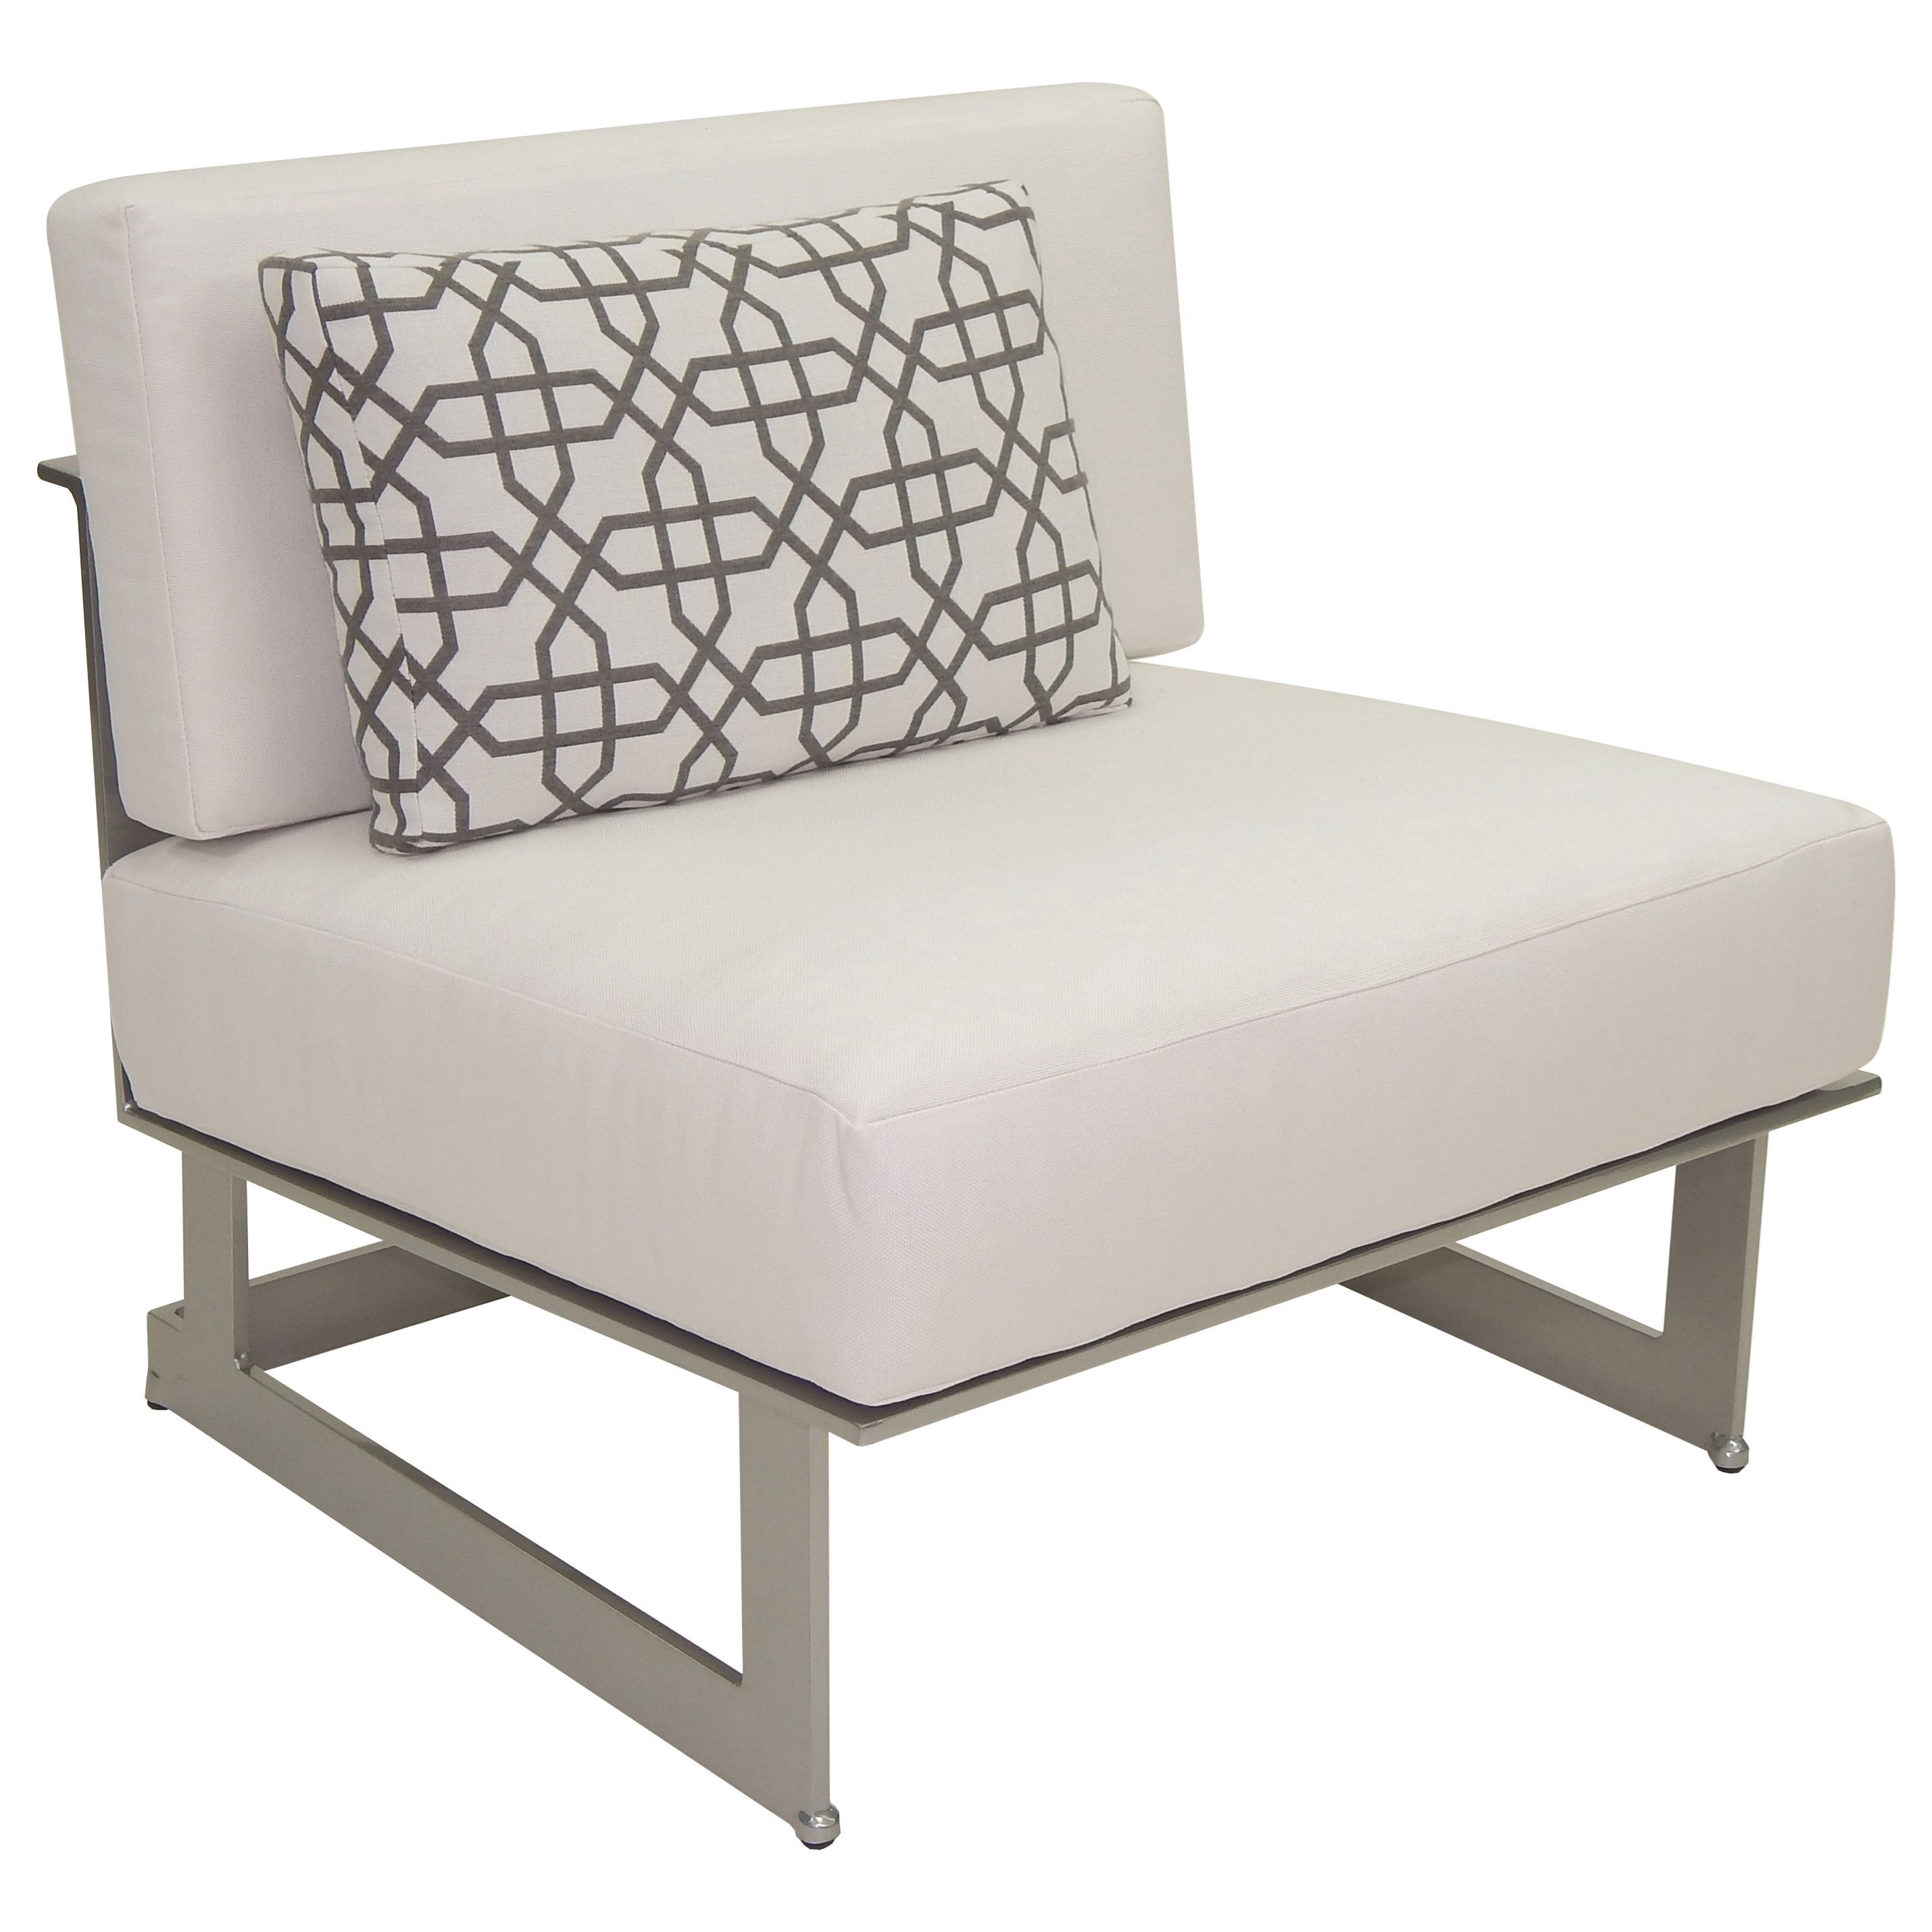 Eclipse Sectional Armless Lounge Unit w/ One Pillow by Castelle by Pride Family Brands at Baer's Furniture